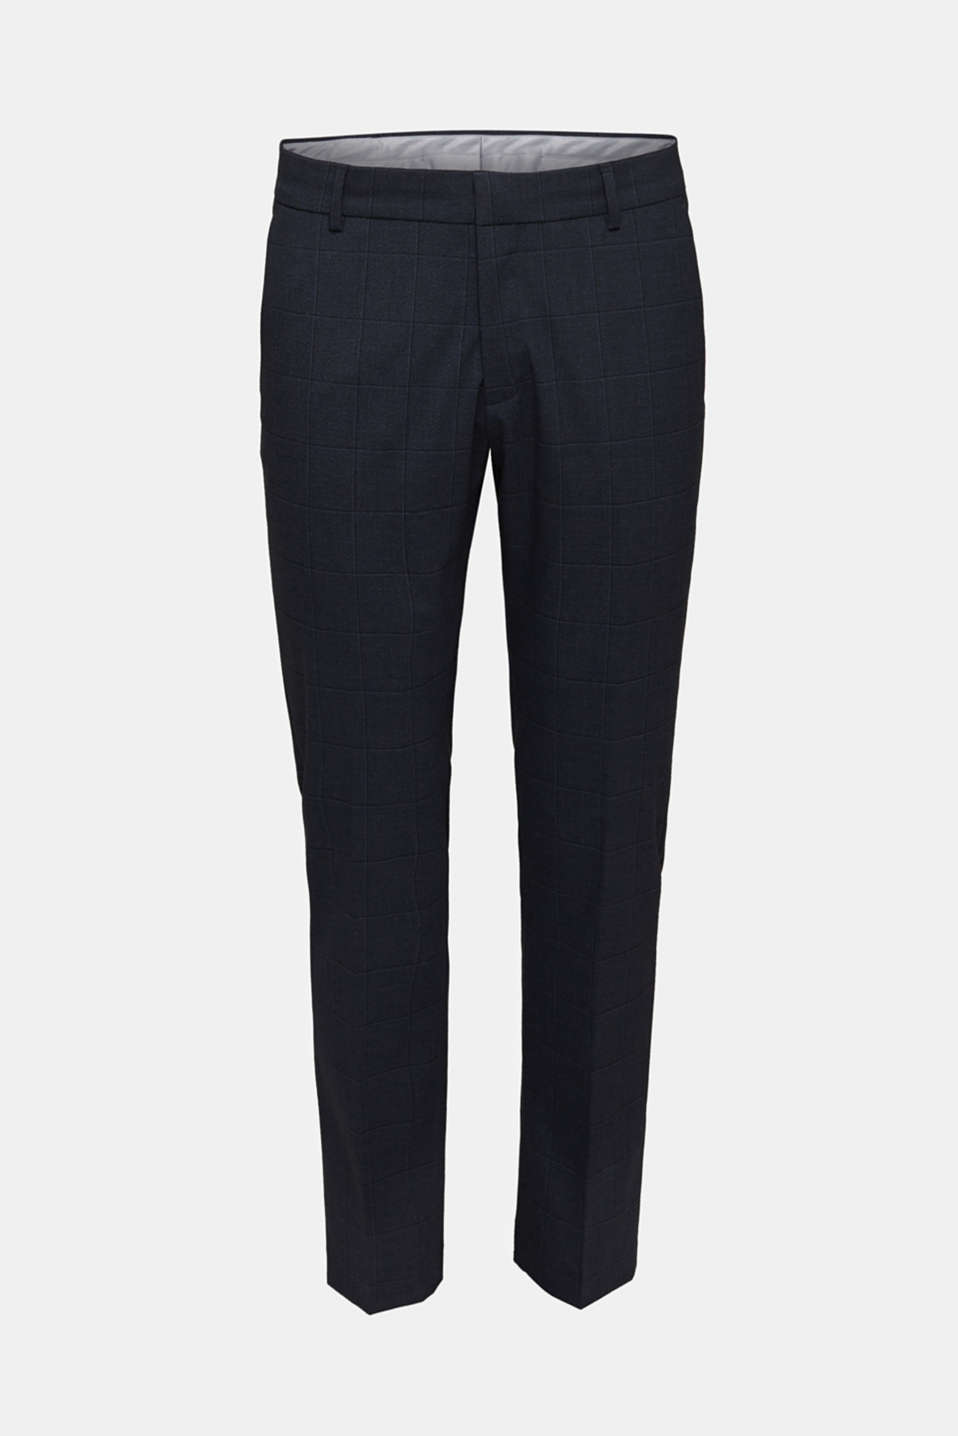 WINDOW CHECK mix + match trousers with stretch, DARK BLUE 3, detail image number 6